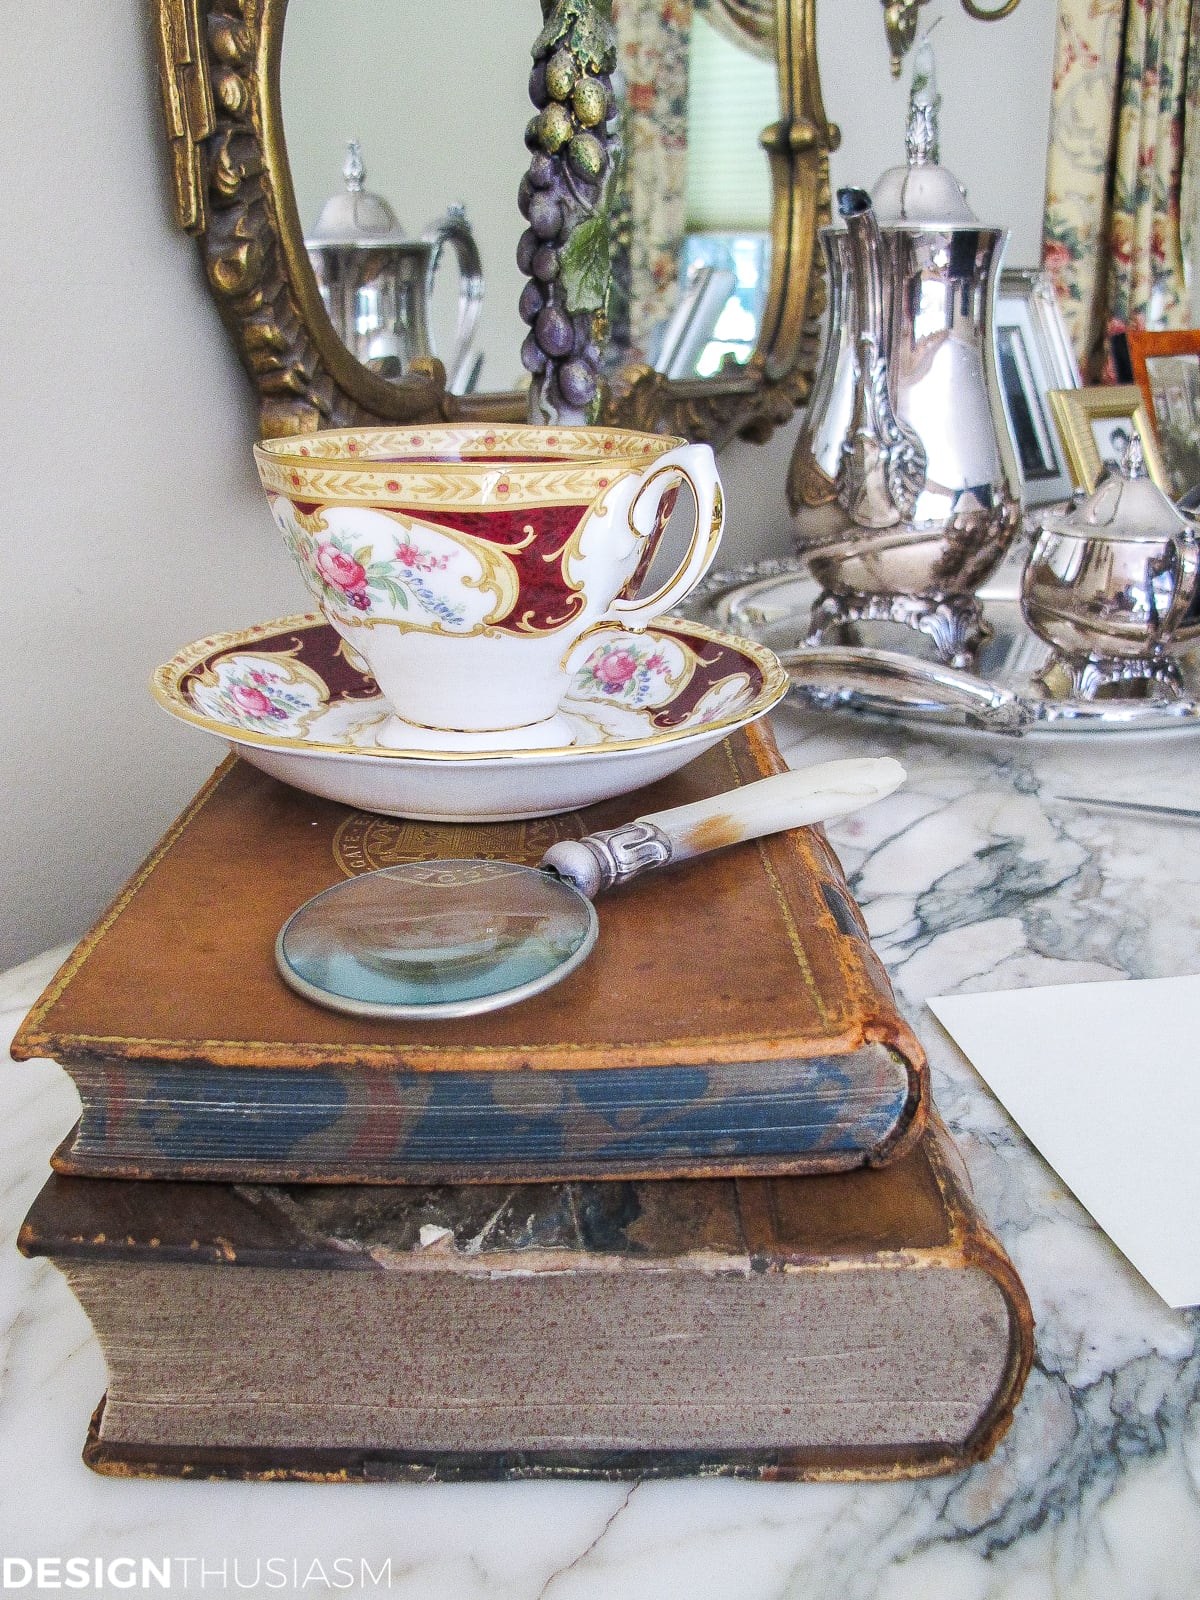 Decorating With Books: How to Use Vintage Books in Your Home